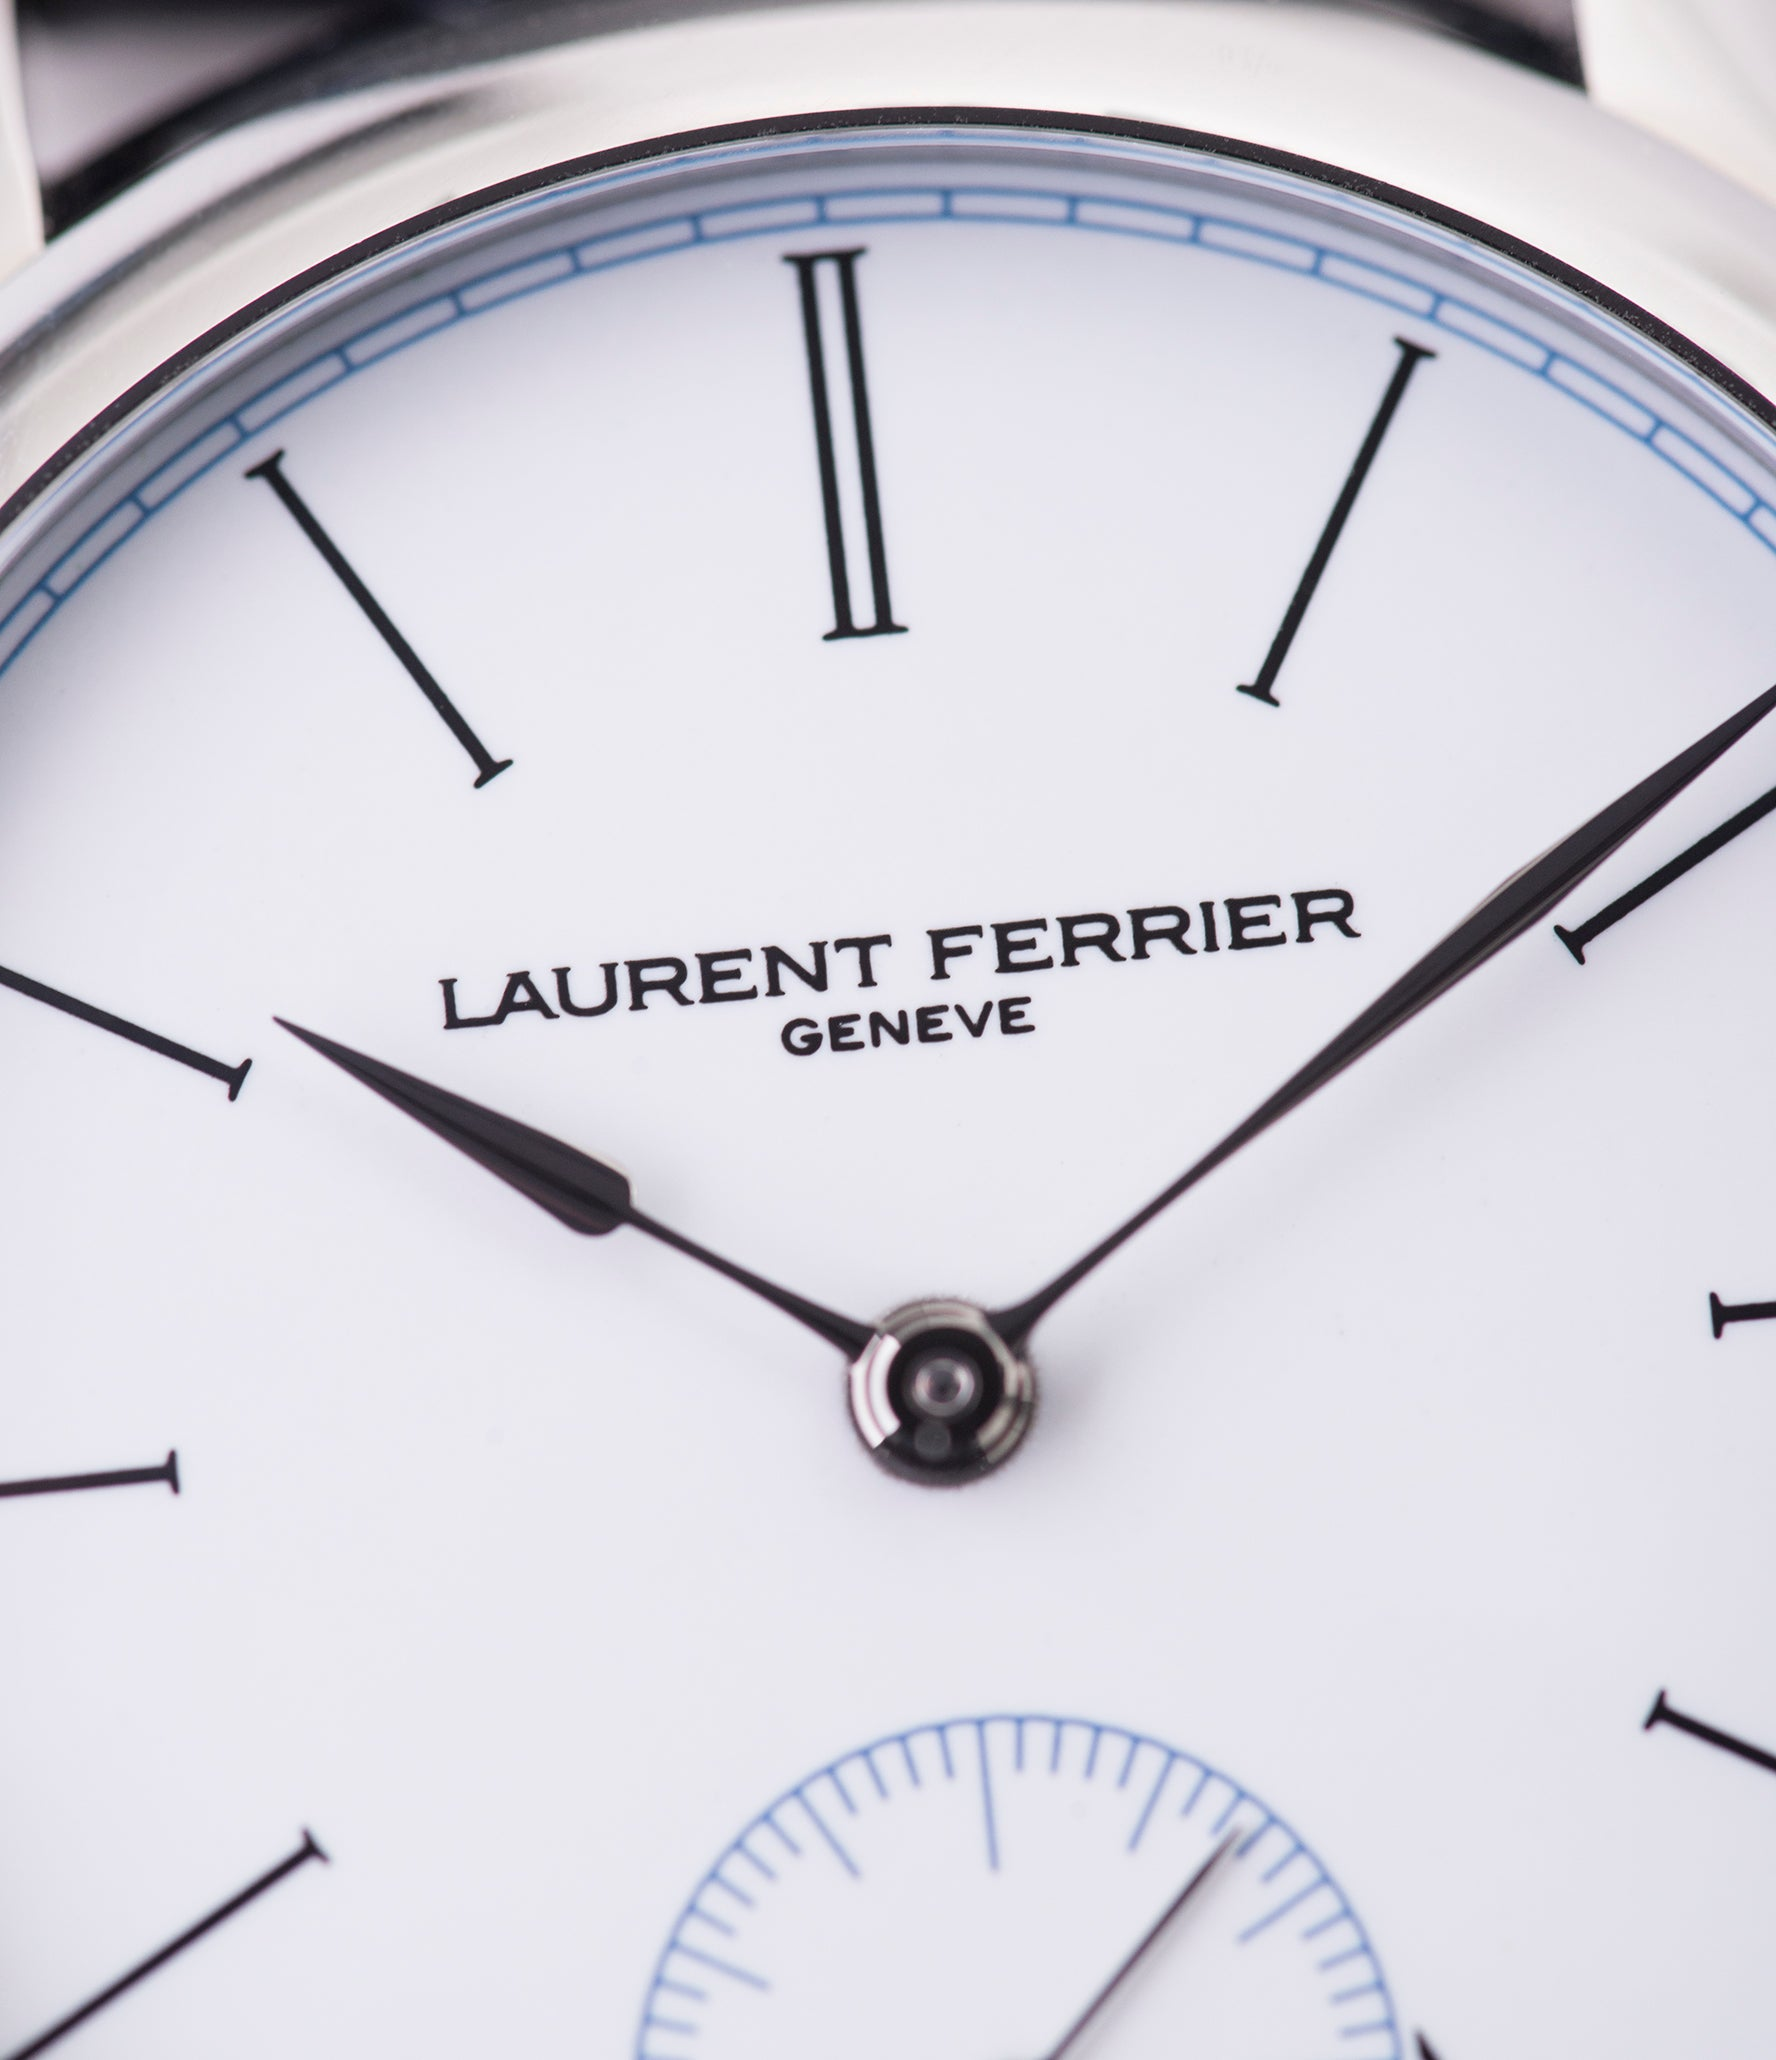 white enamel dial Laurent Ferrier Galet Micro-Rotor FBN 230.02 Enamel dial steel watch for sale online at A Collected Man London UK approved seller of independent watchmaker Laurent Ferrier